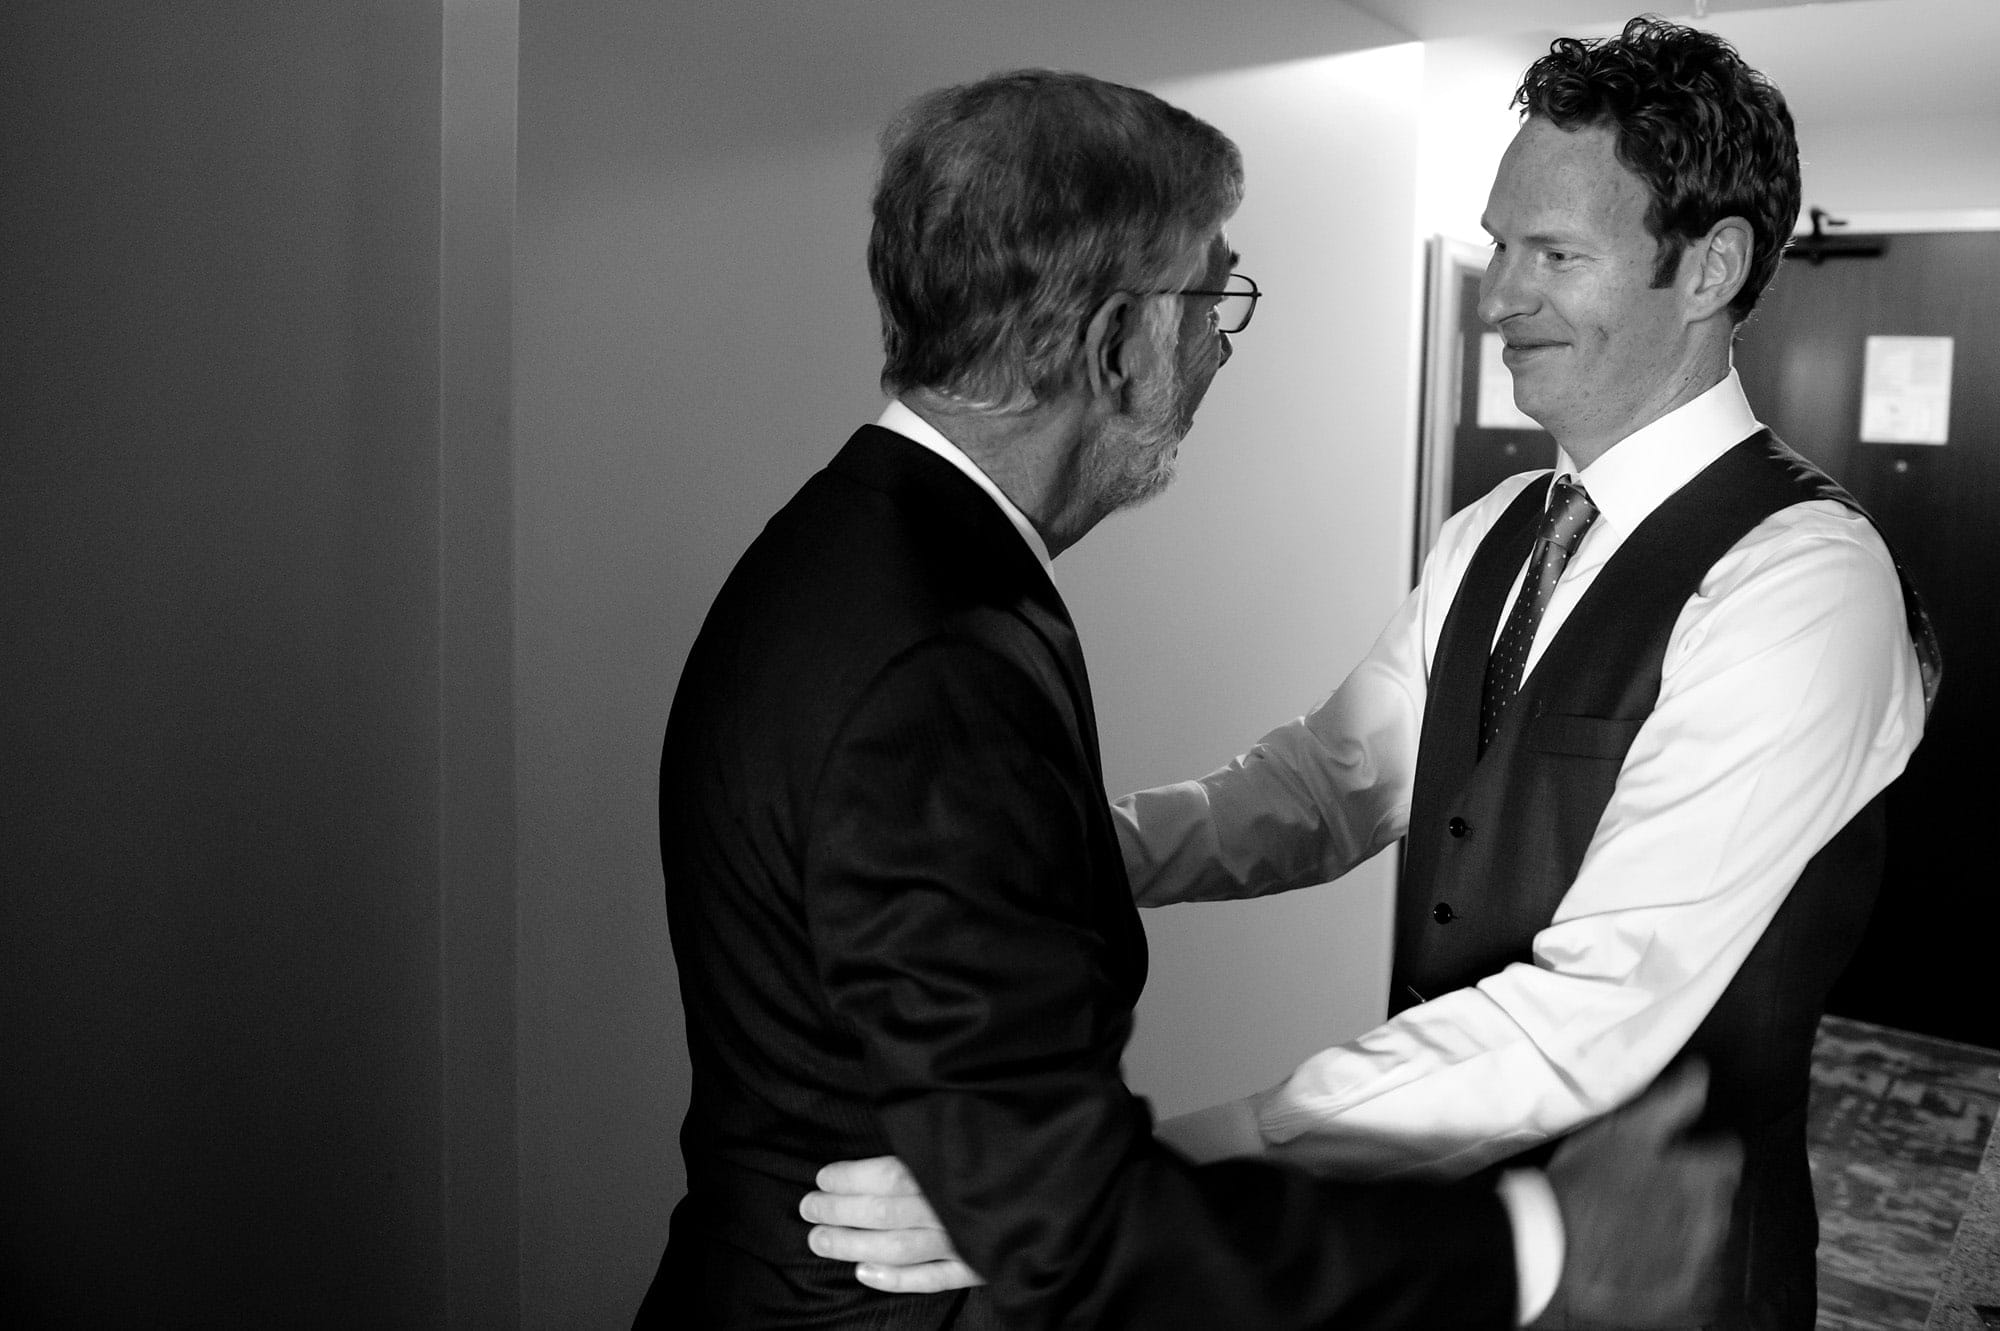 The groom and his father share a moment before leaving the hotel